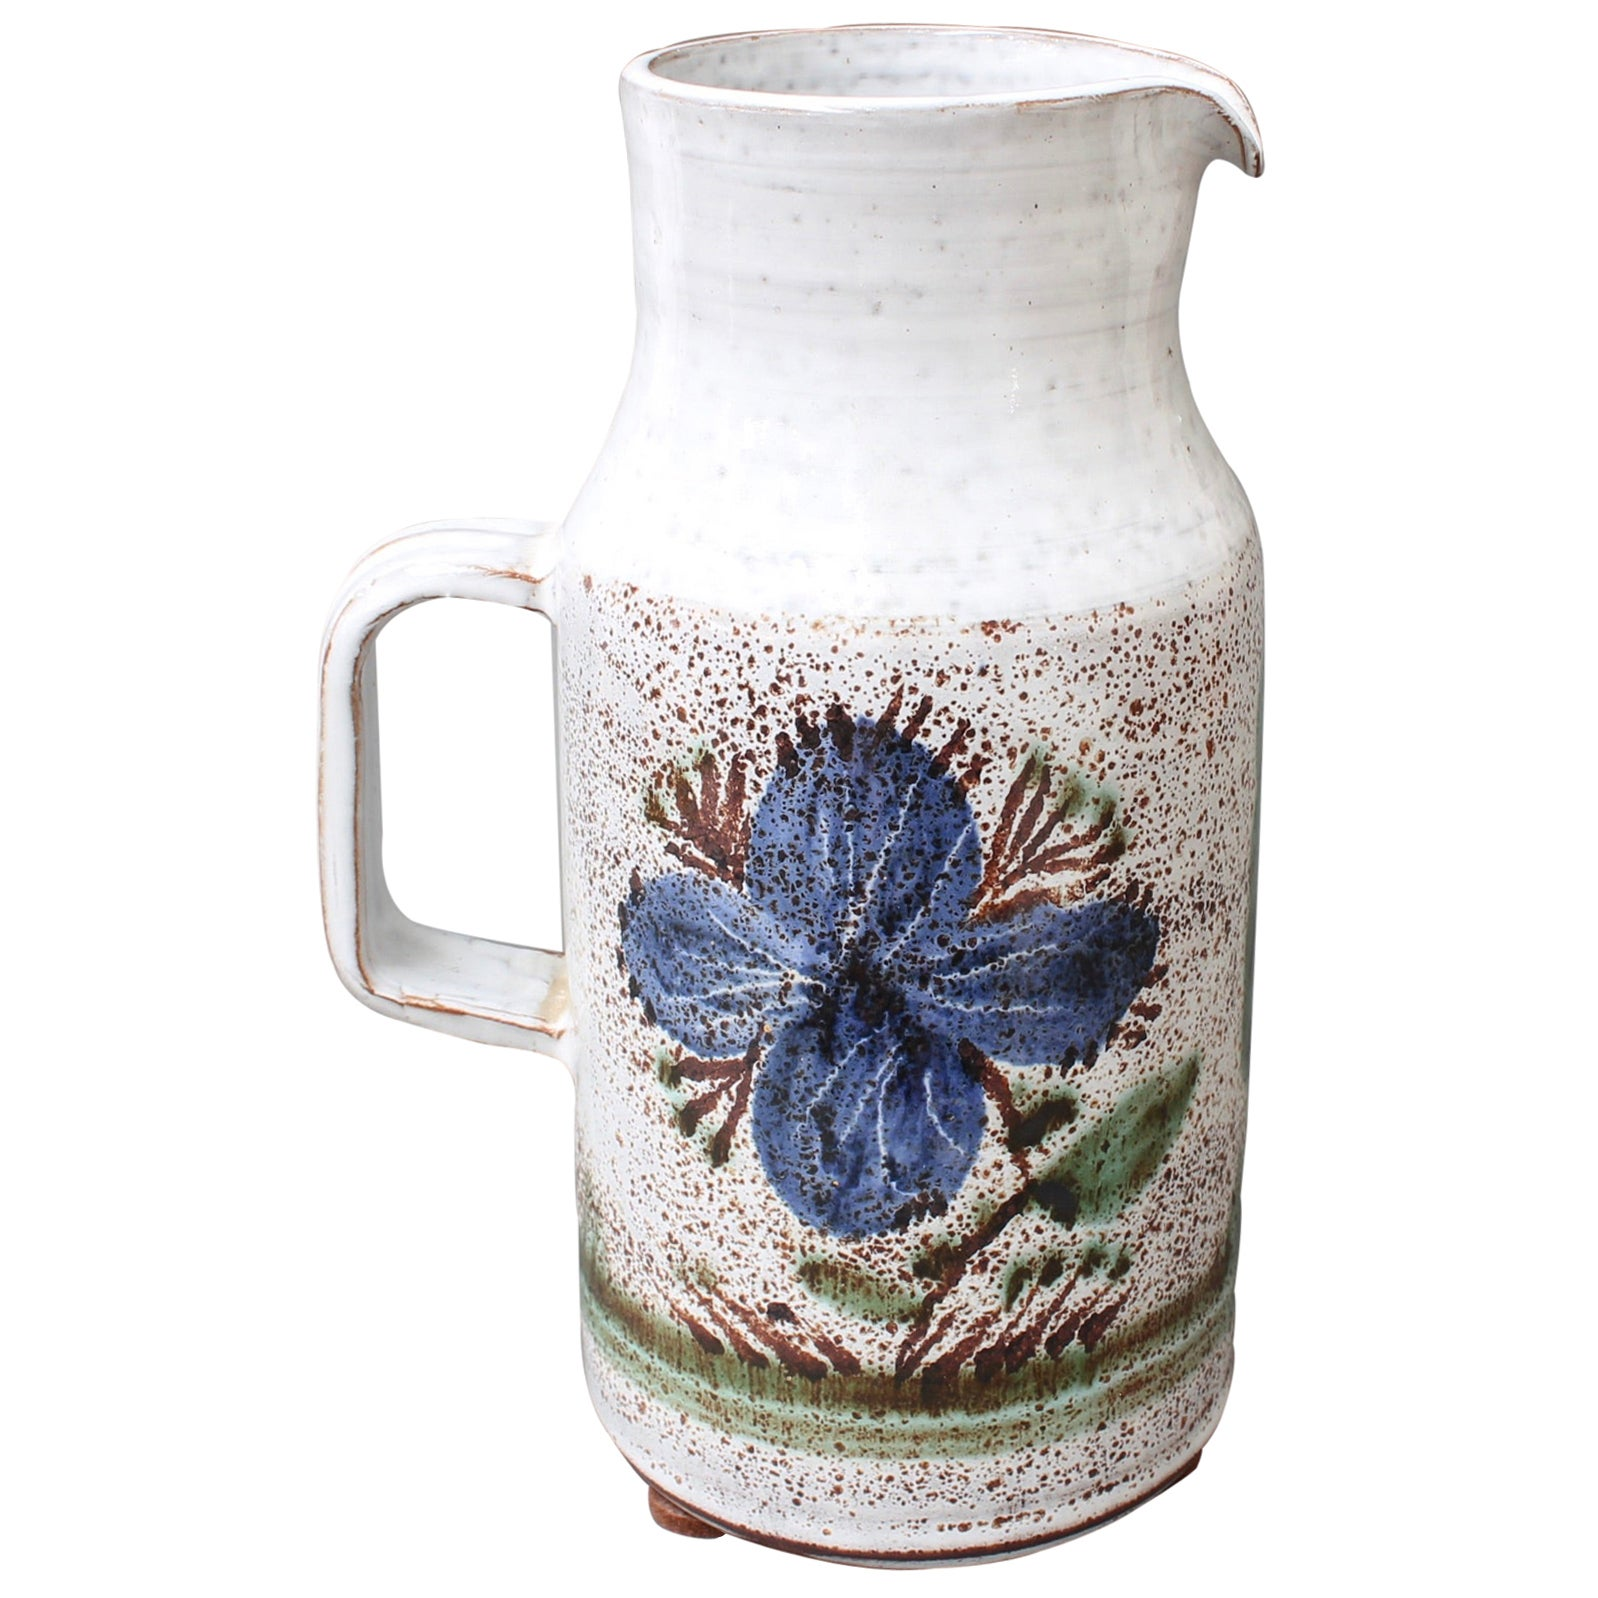 Vintage French Ceramic Pitcher by Michel Barbier, circa 1960s